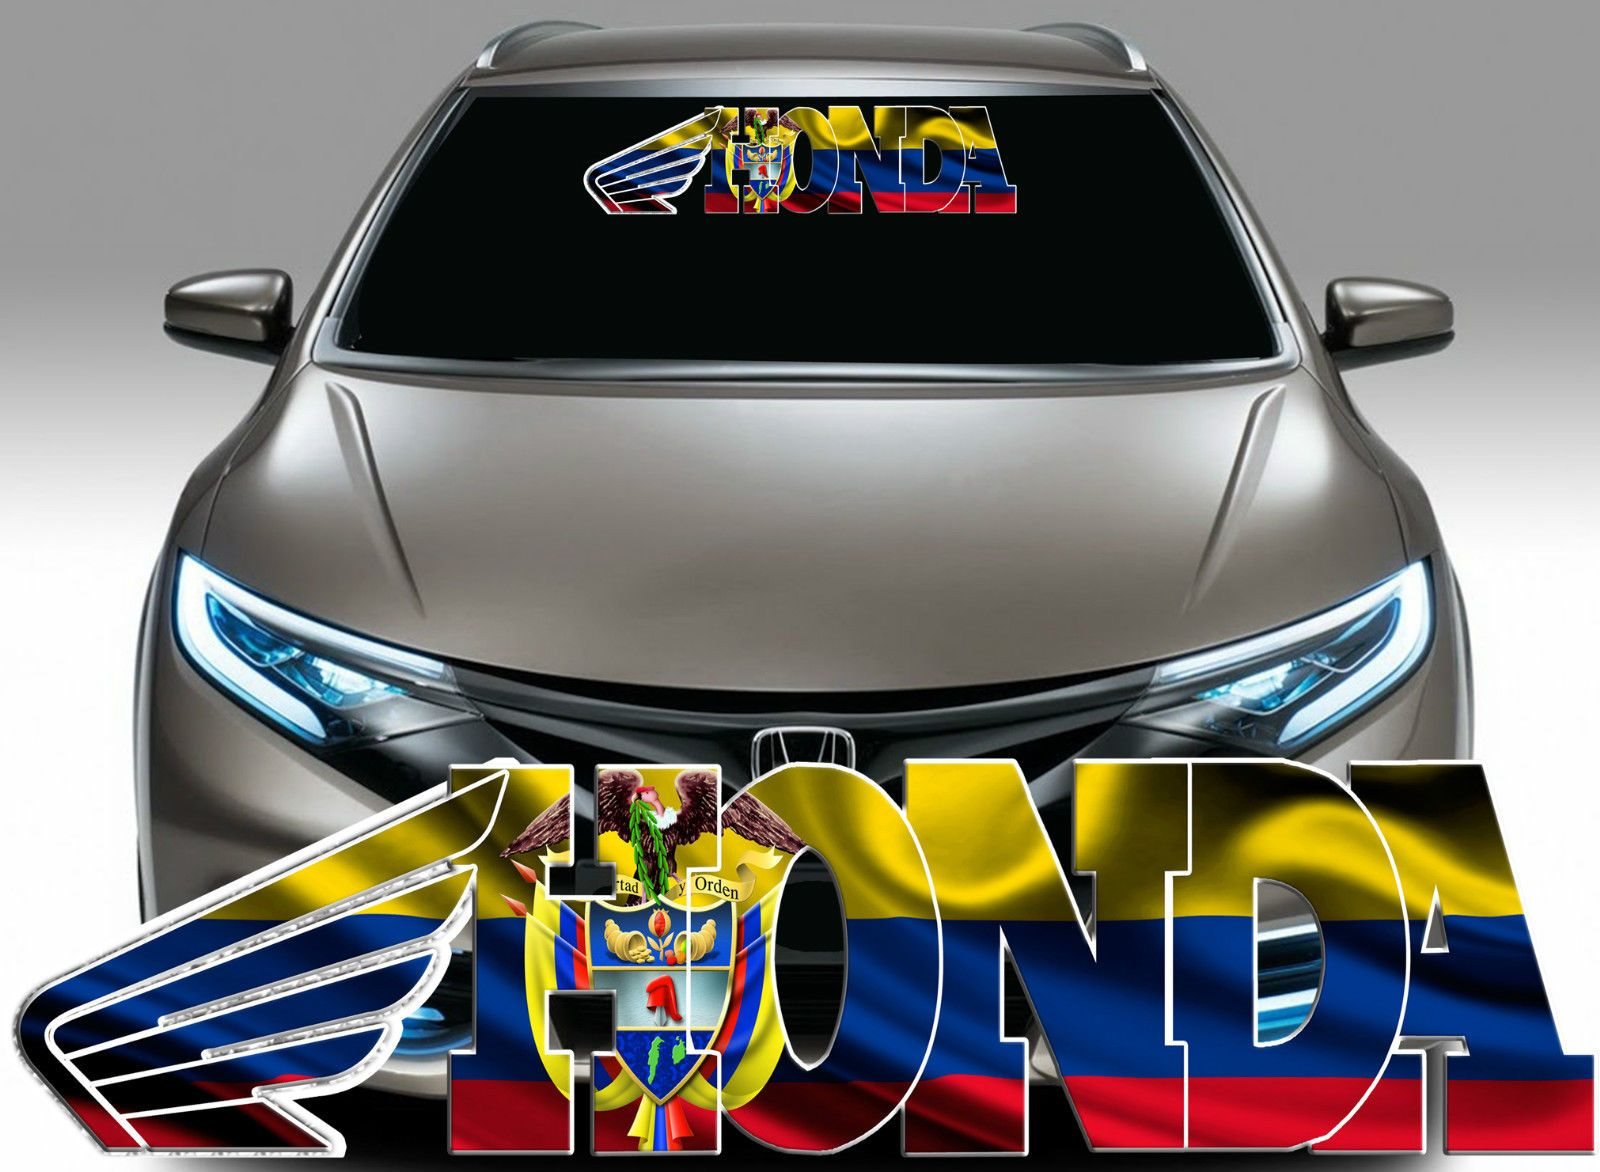 X Colombia Flag Decal Colombian Flag Decal Sticker Fits Honda - Honda decal stickers for cars